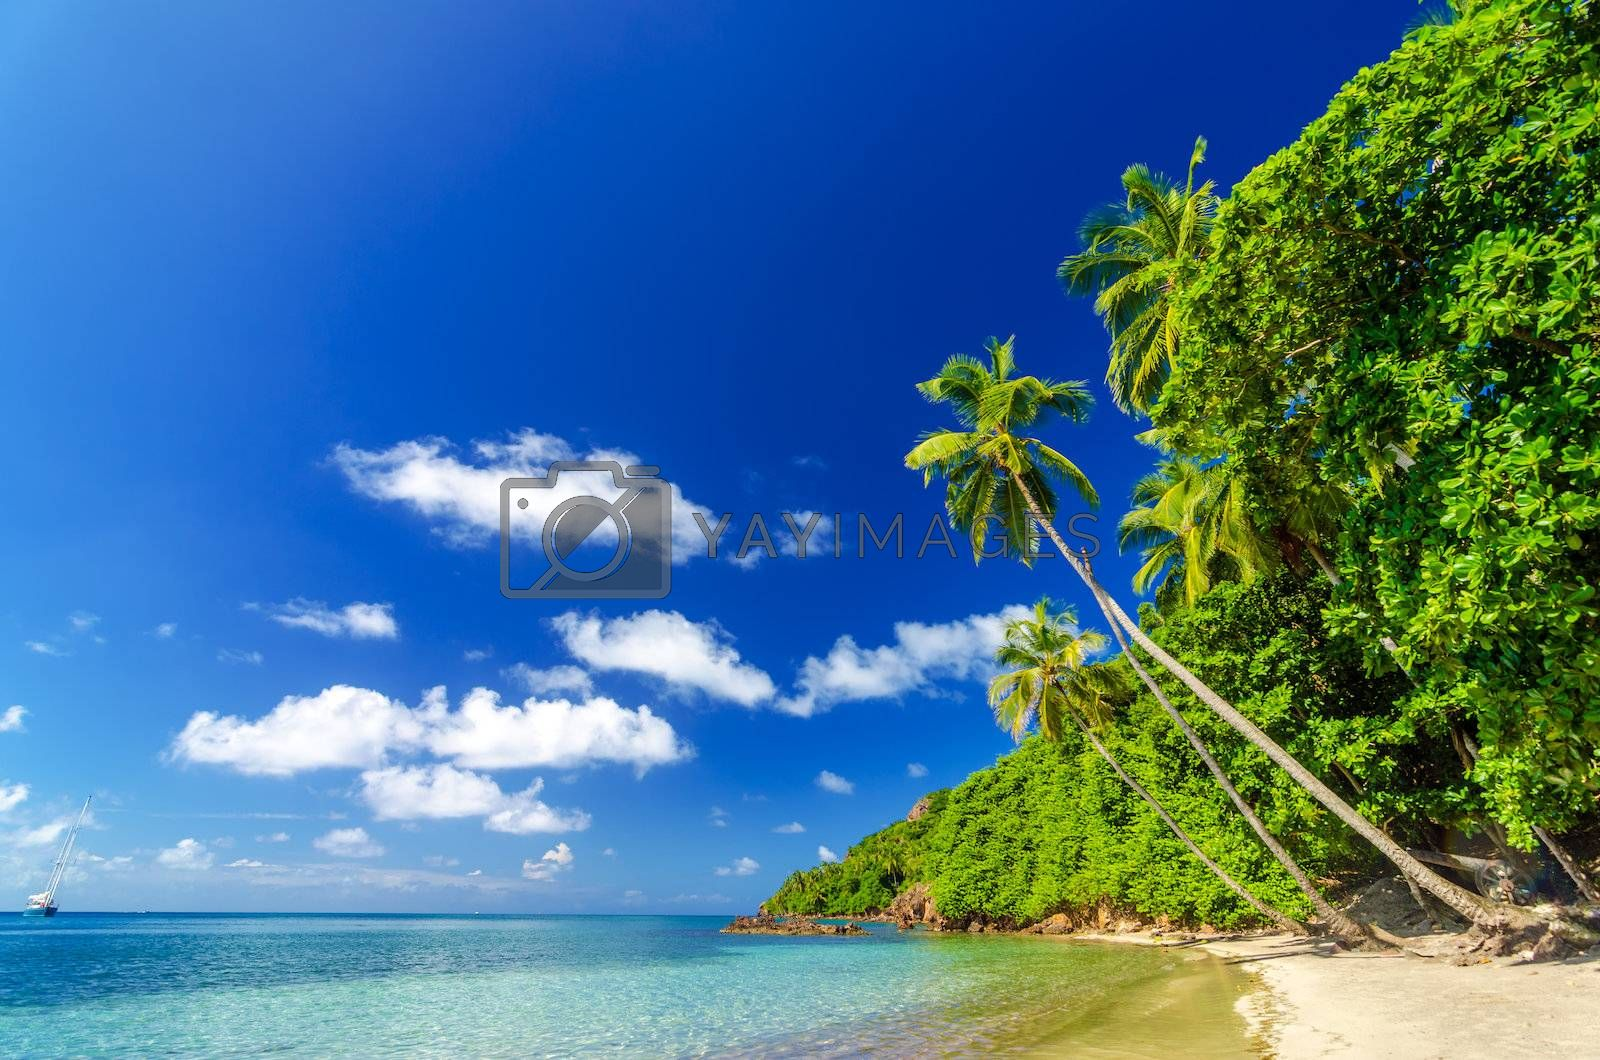 Tropical white sand beach and turquoise water in Caribbean Sea